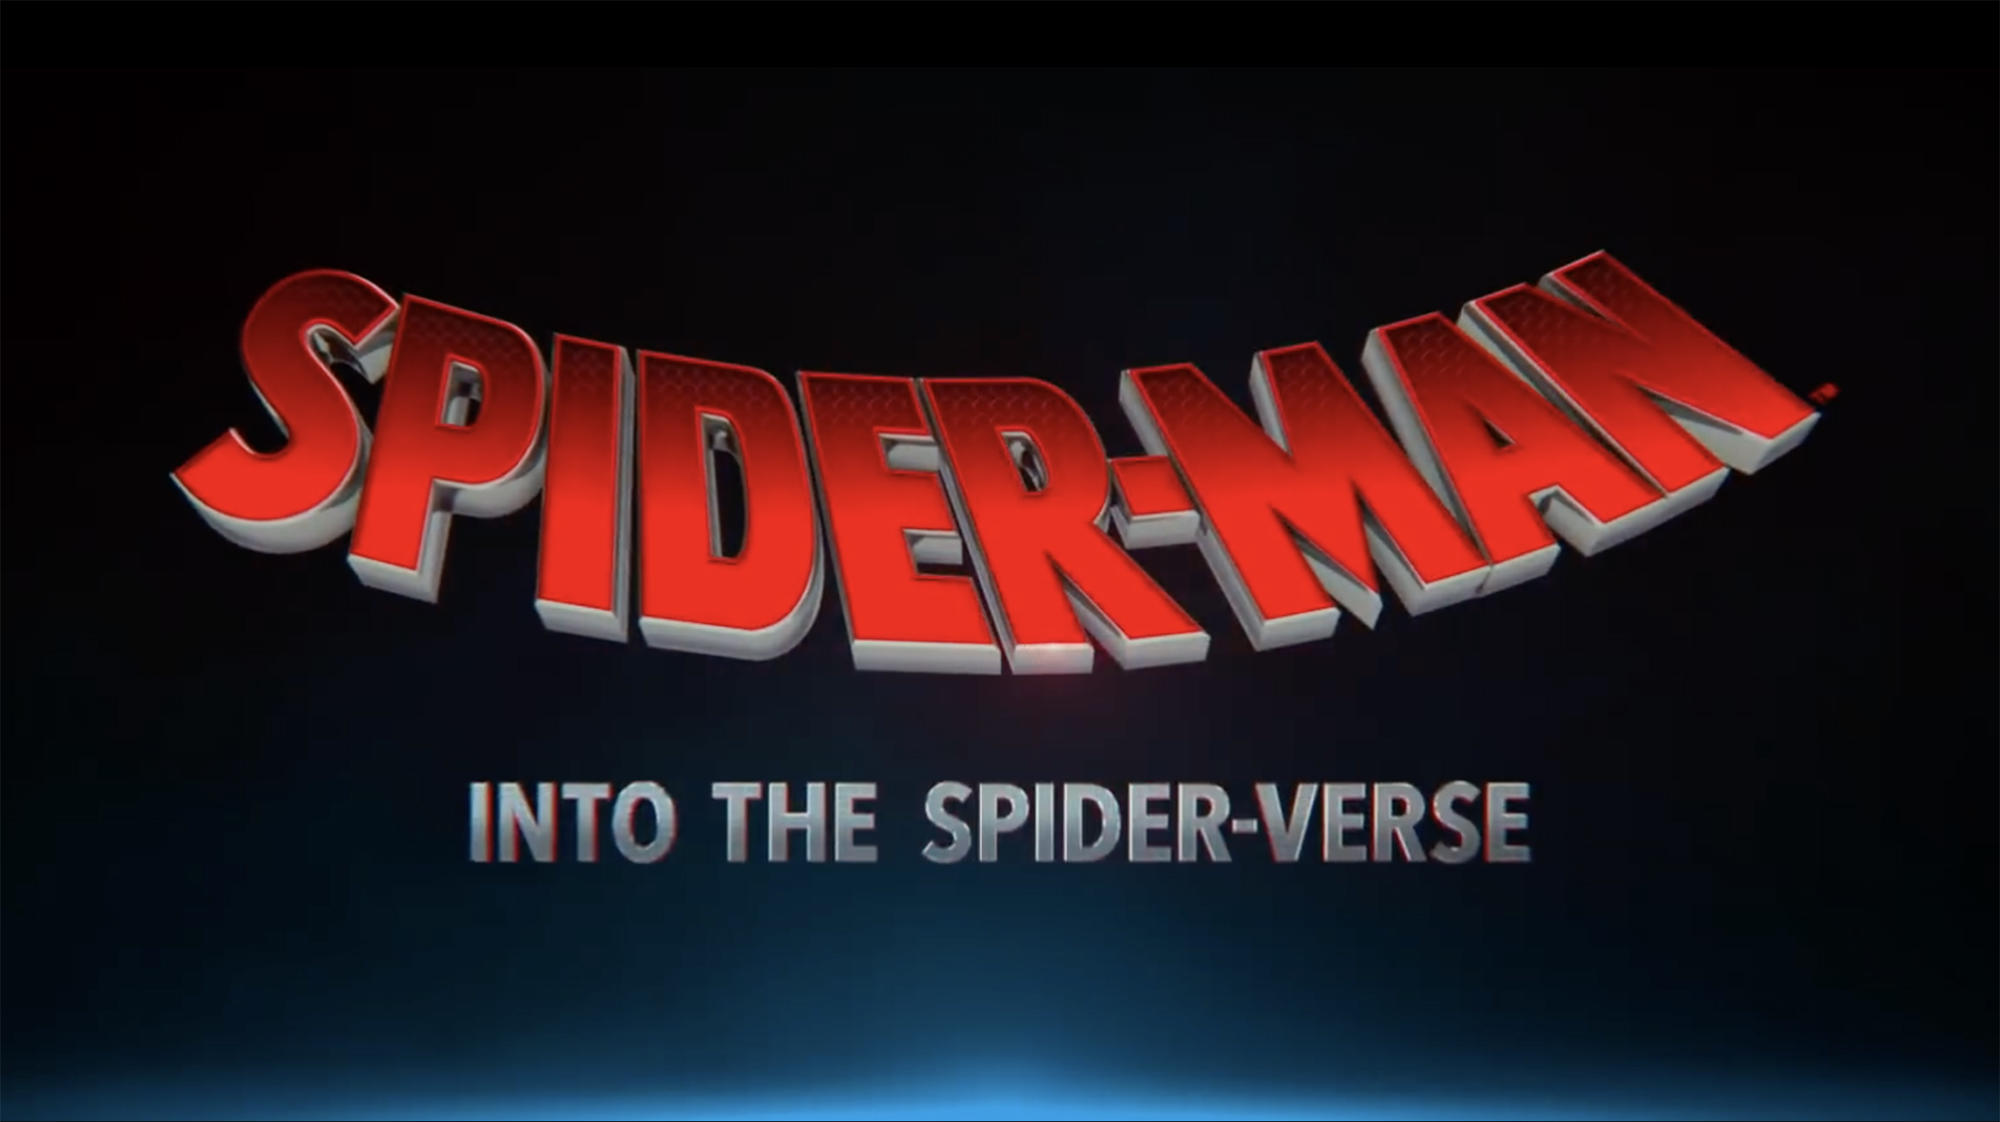 Spider-Man: Into the Spider-Verse' Producers On That Post